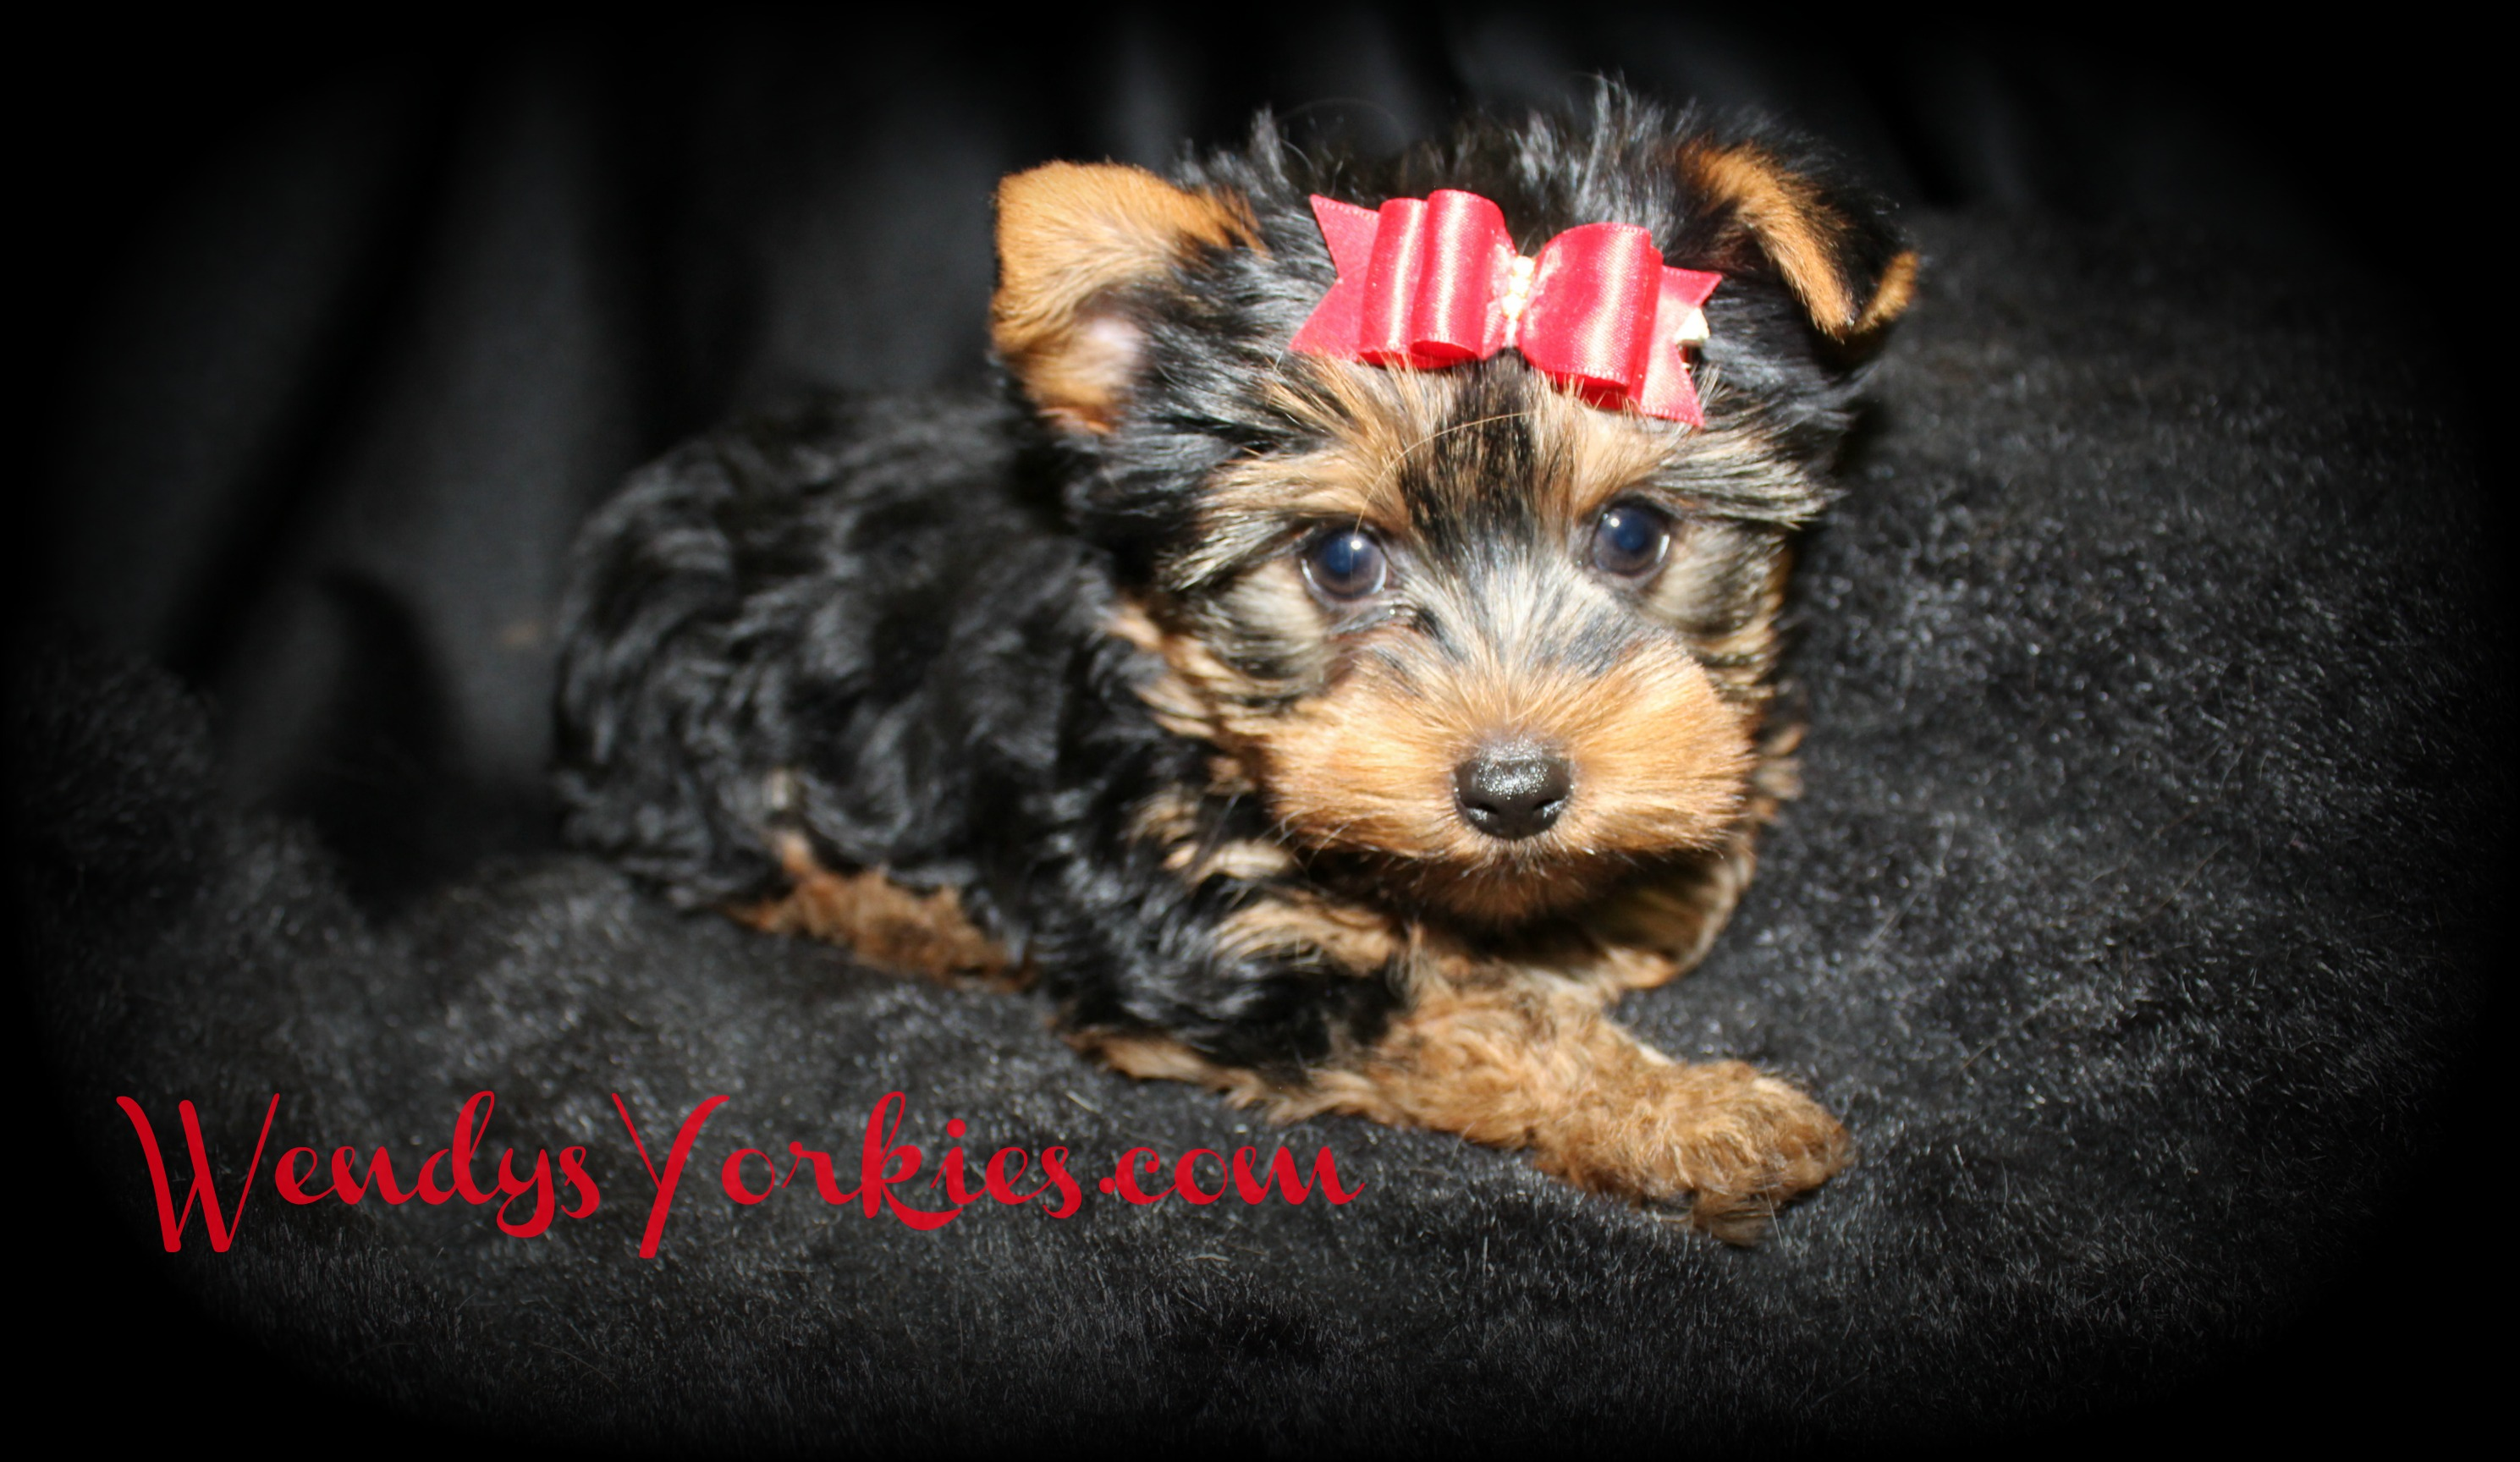 WendysYorkies.com, Star m1 Yorkie puppy breeder